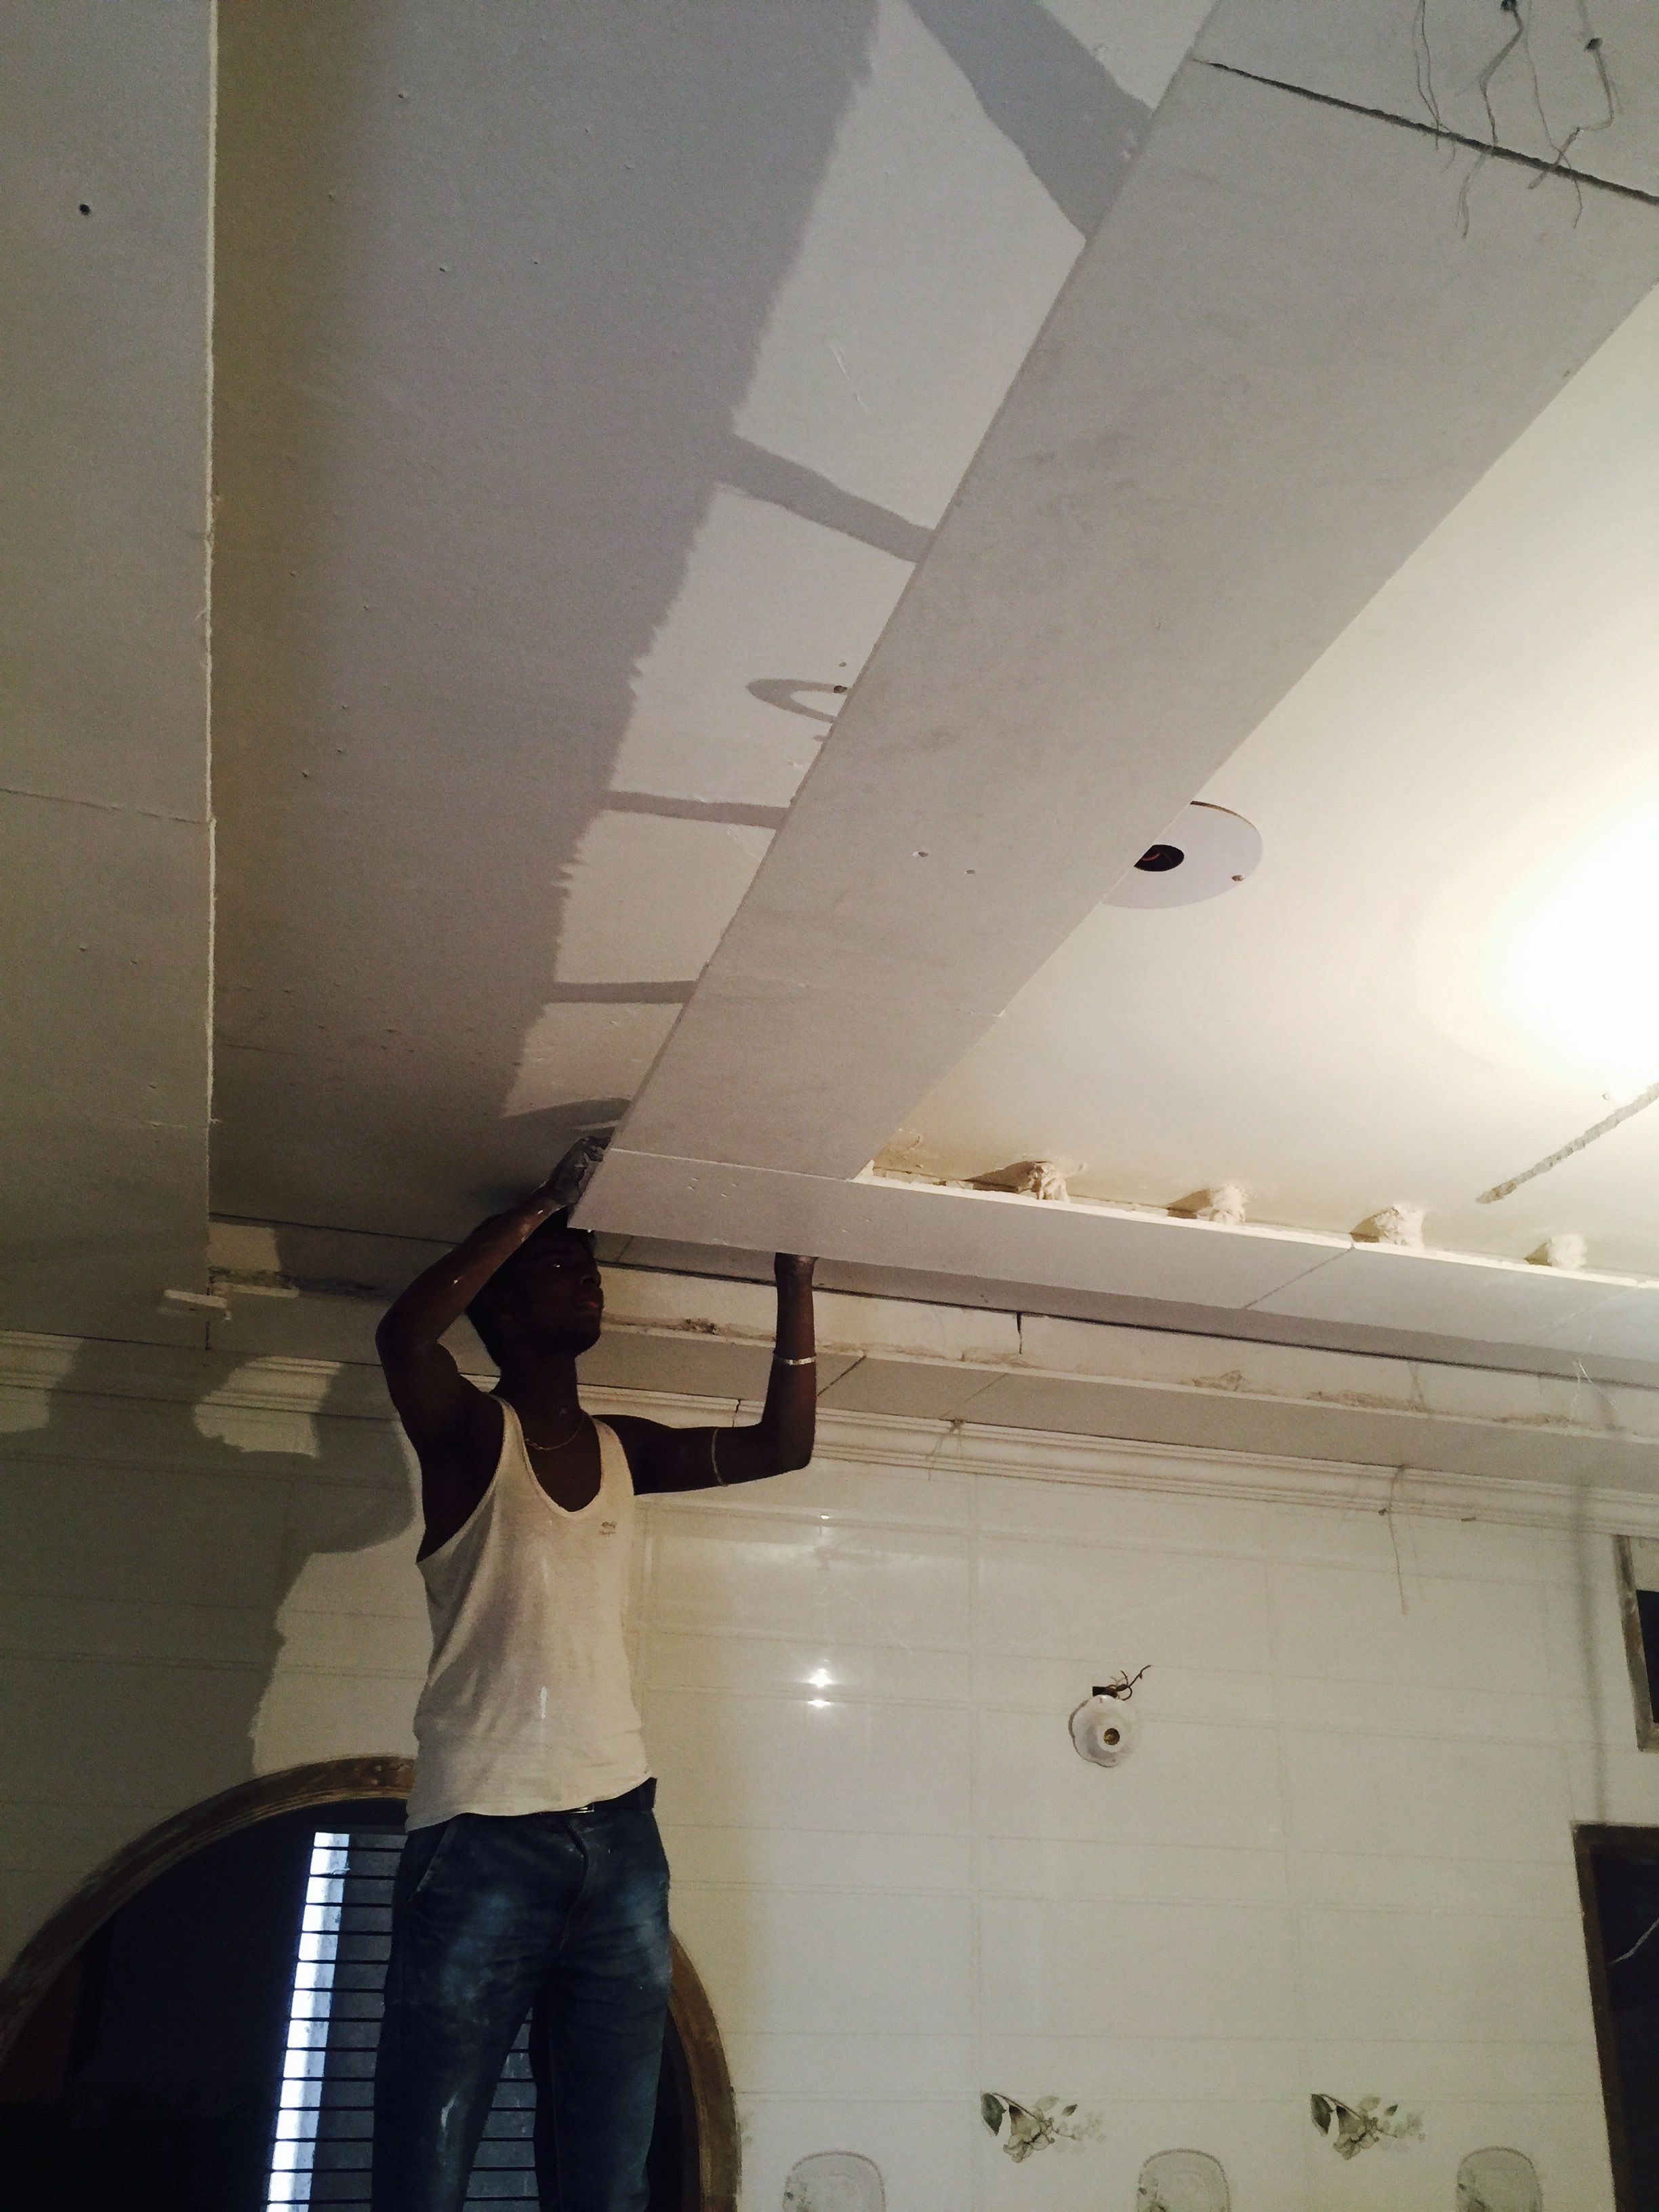 plaster diy lath companies wall damage damages guide how crack ceiling and cracks to repair